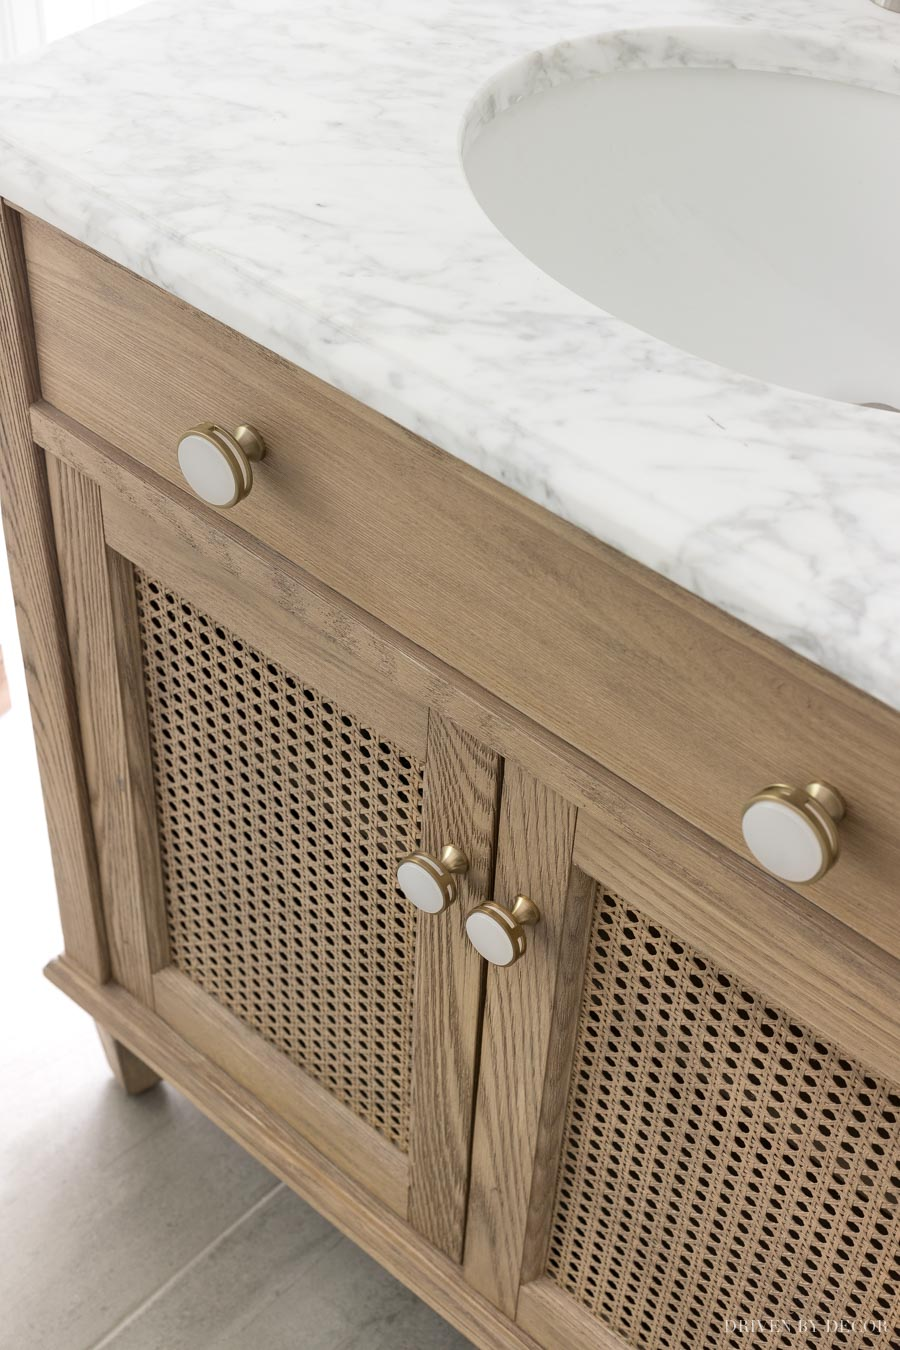 Love these knobs for a bathroom vanity or cabinets!